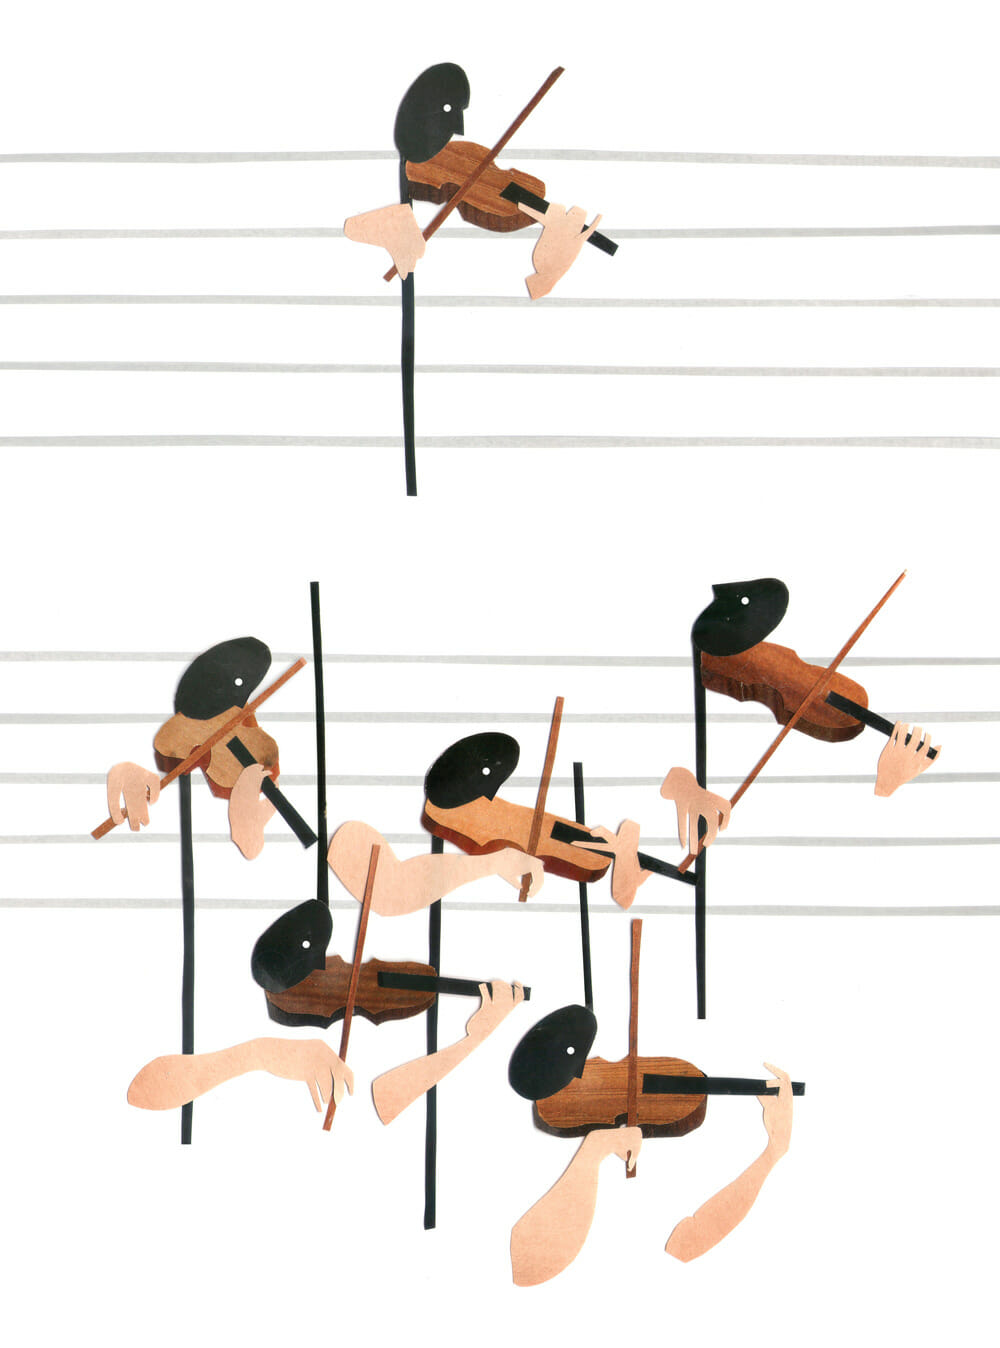 Beats on a section of sheet music sprout human arms and play the violin.